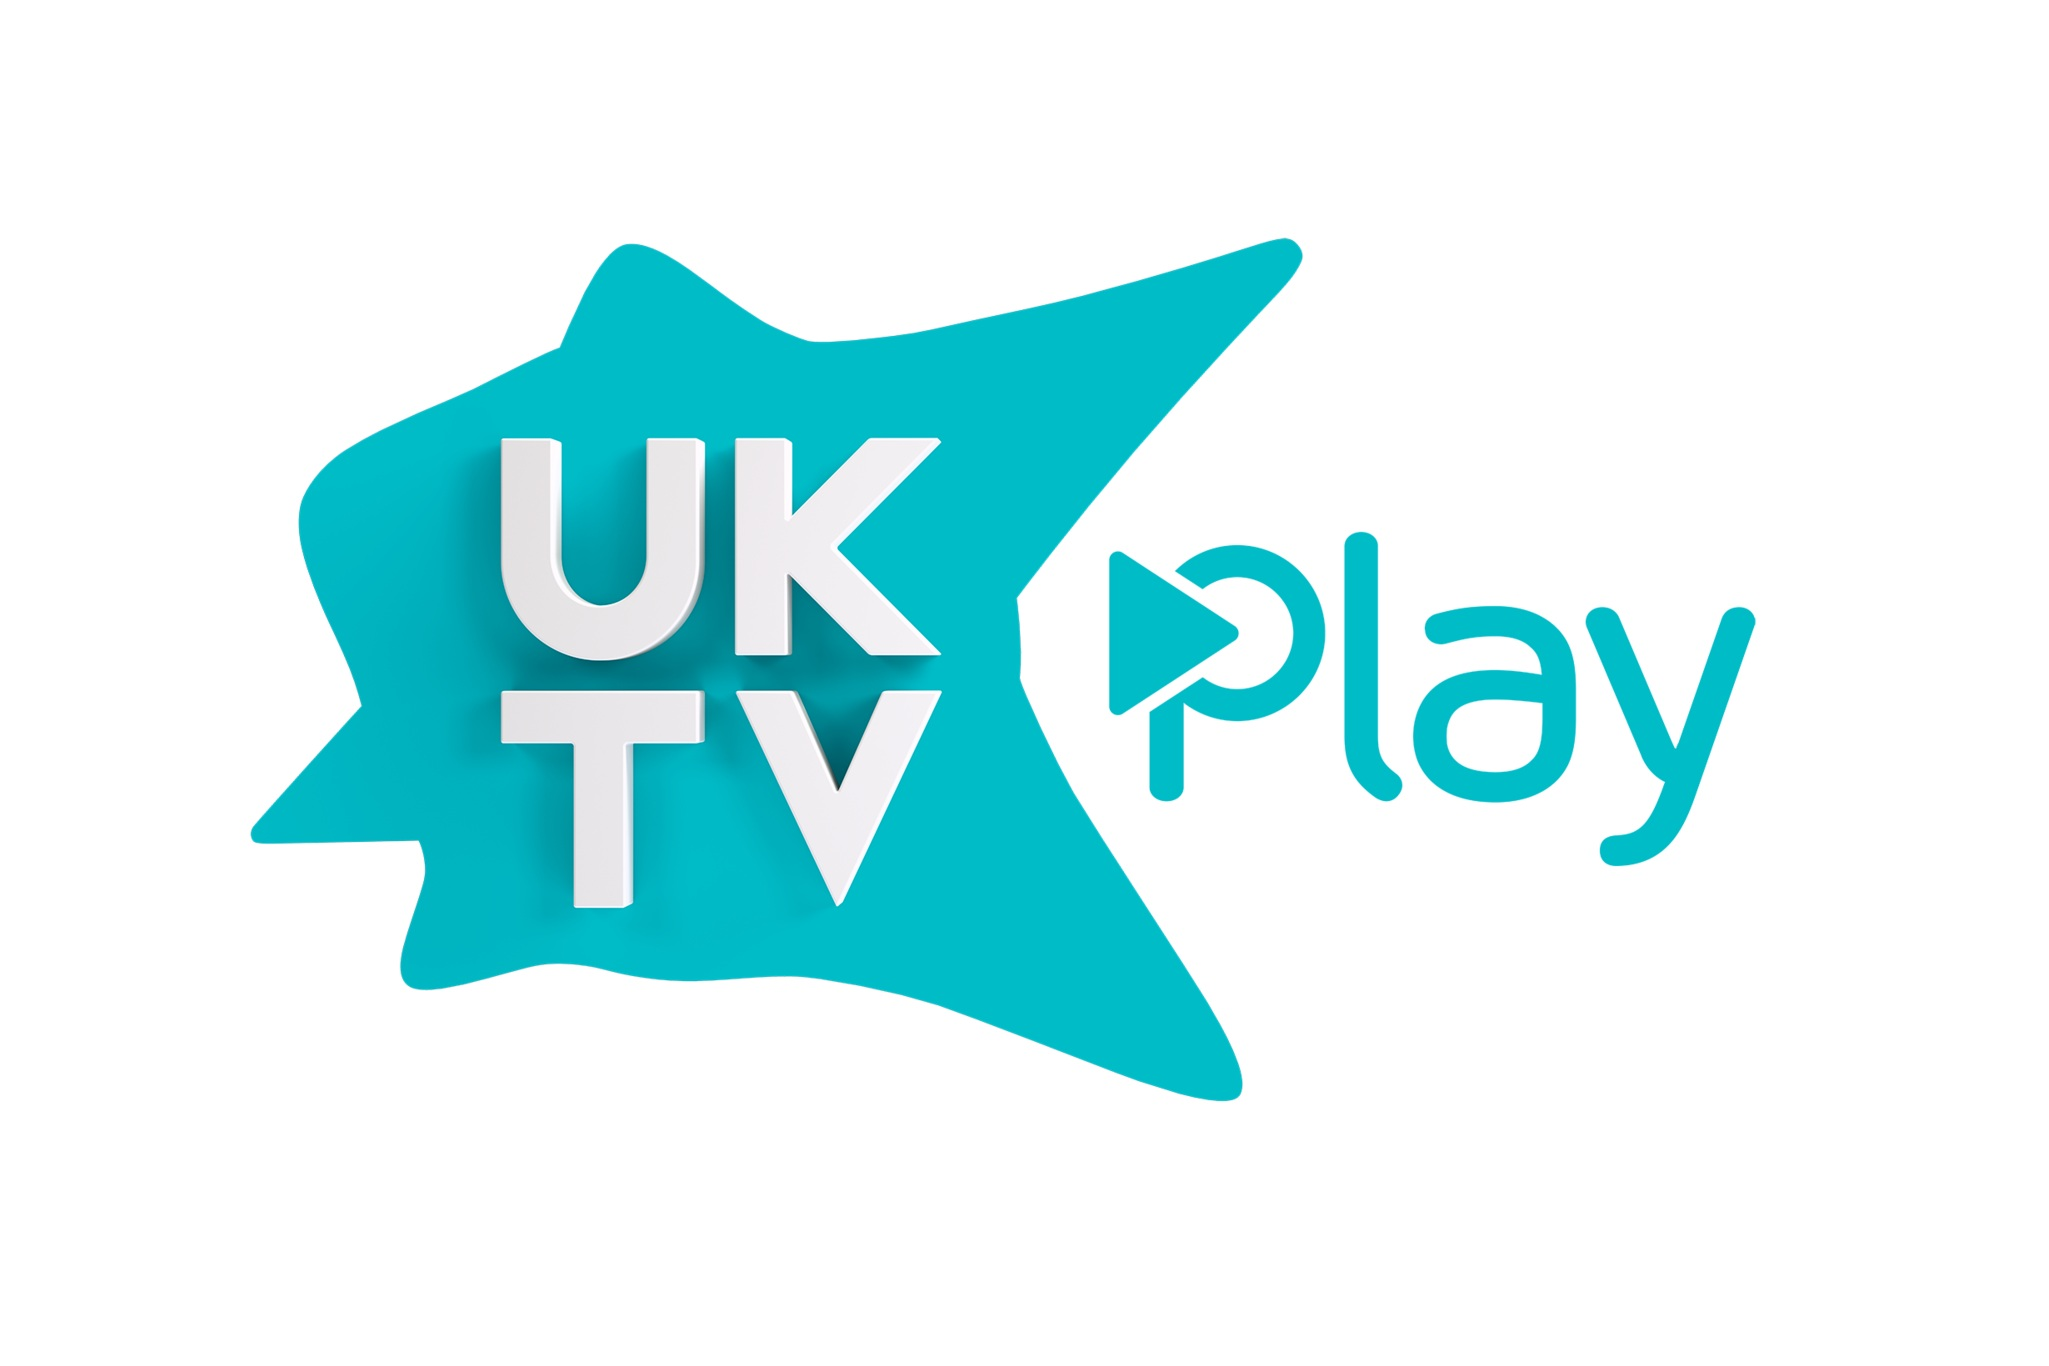 UKTVPLAY_3DLOGO_LANDSCAPE_PNG_Small_TealText.png